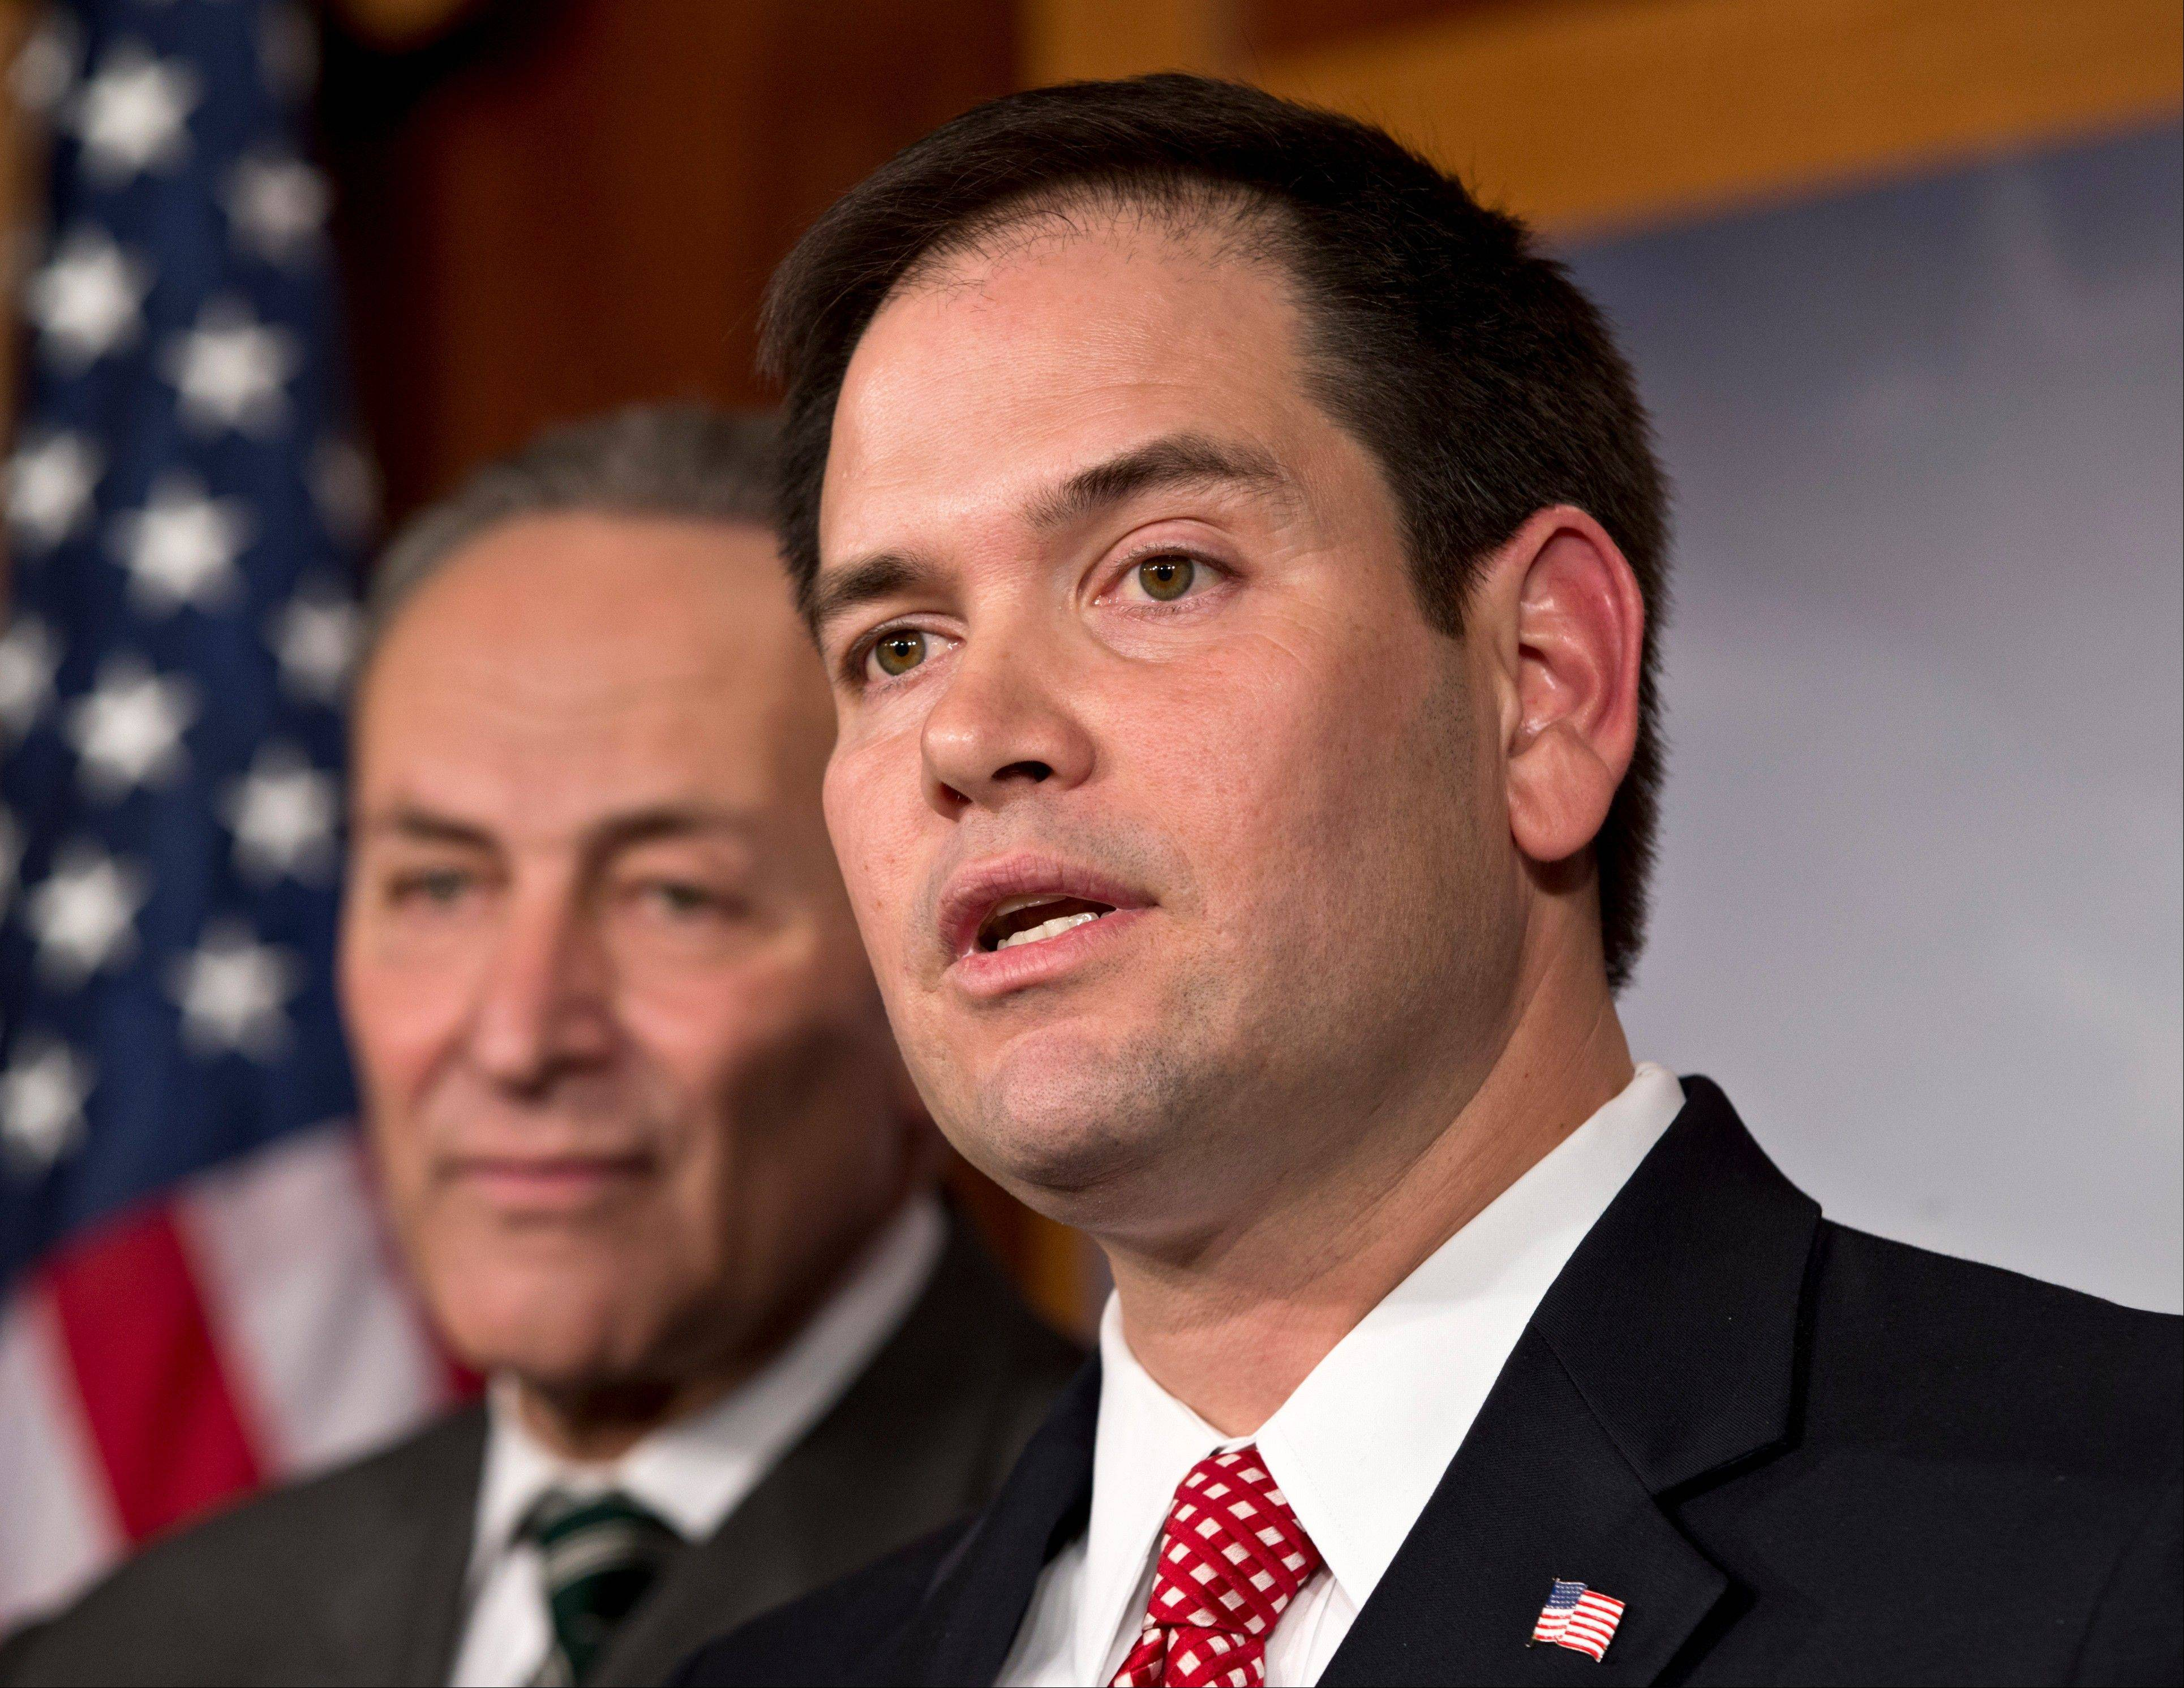 Sen. Marco Rubio, right, and Sen. Charles Schumer, left, are part of a bipartisan group of leading senators to announce that they have reached agreement on the principles of sweeping legislation to rewrite the nation's immigration laws.